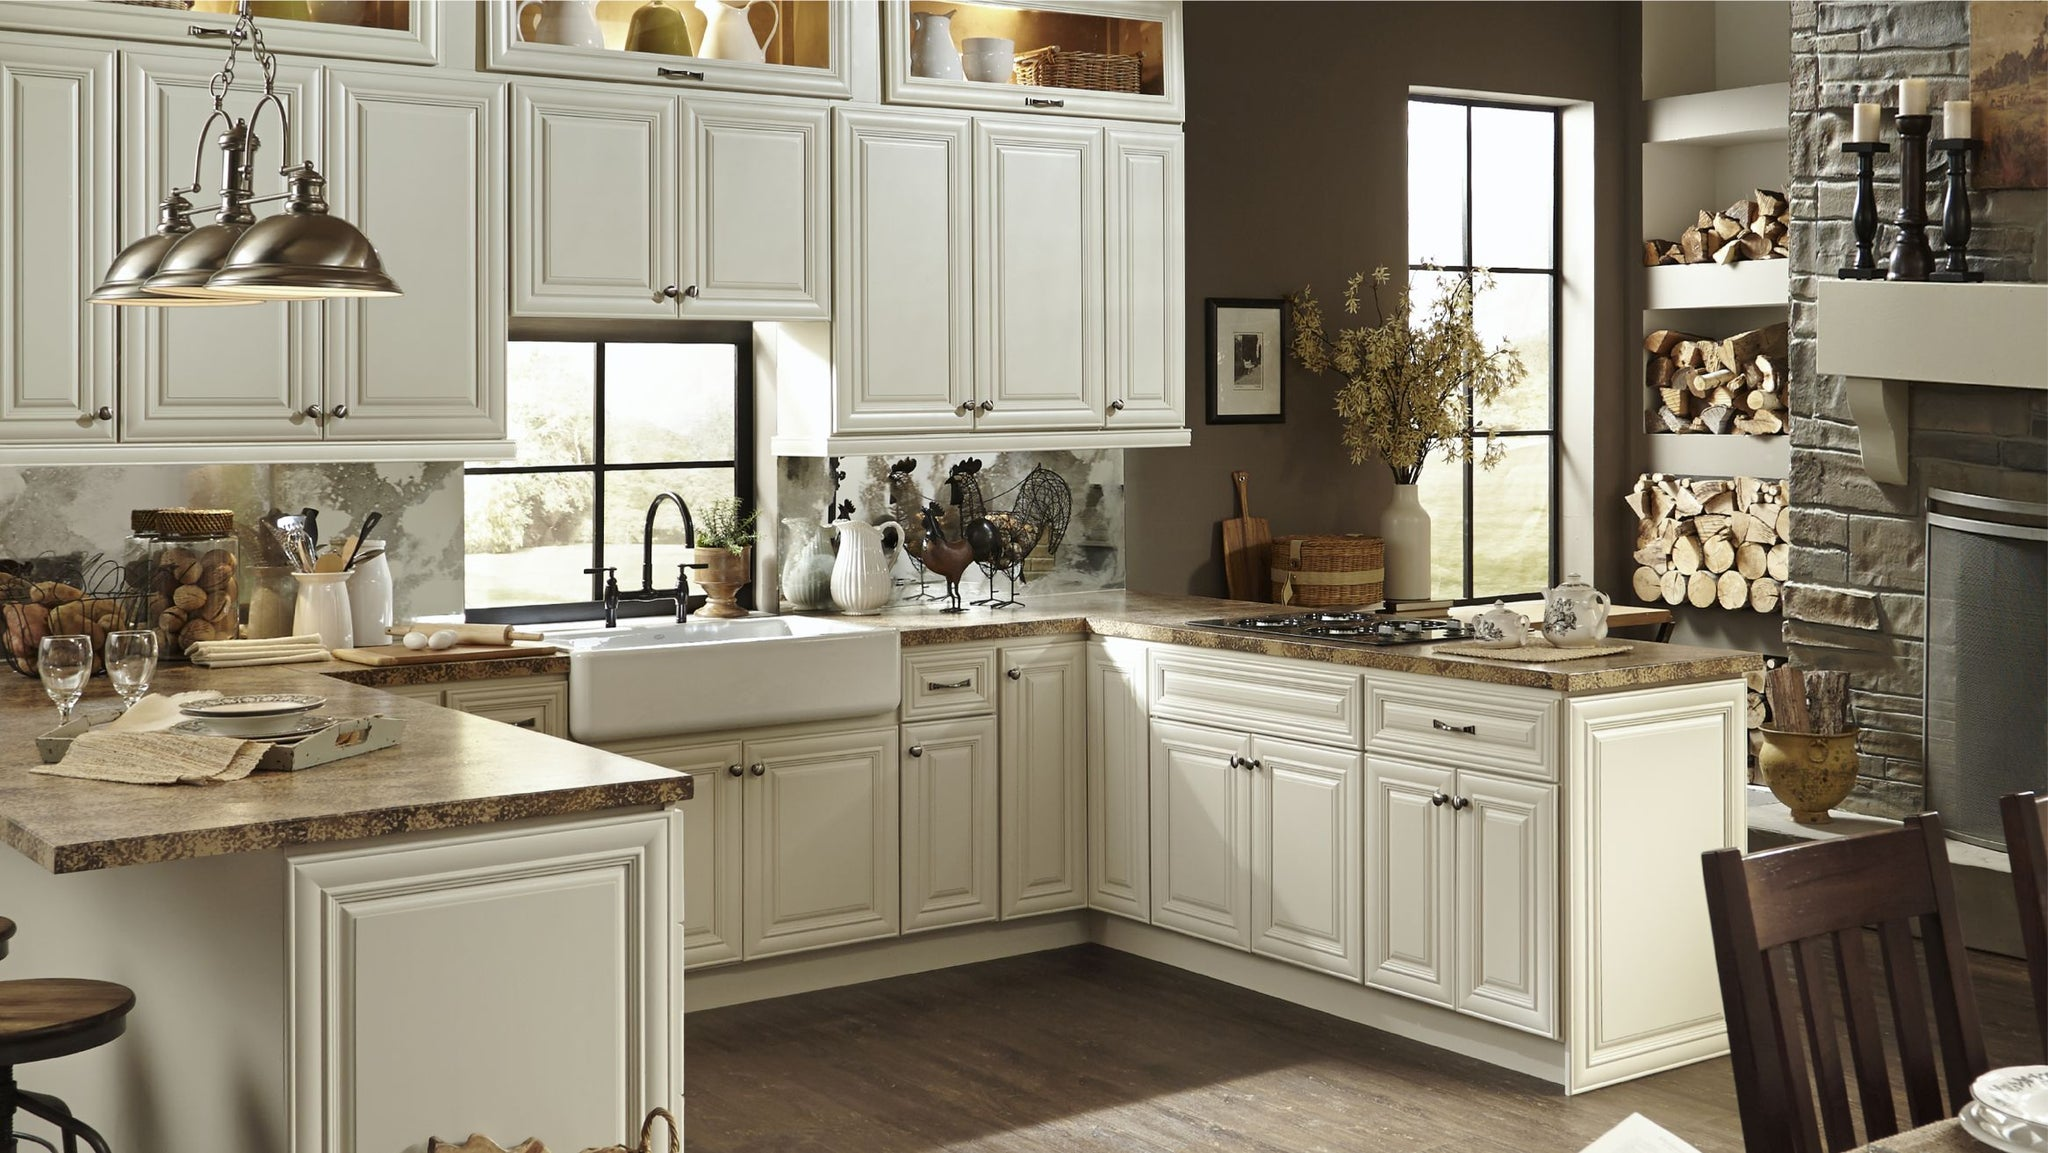 Cabinet Sample - Victoria Ivory